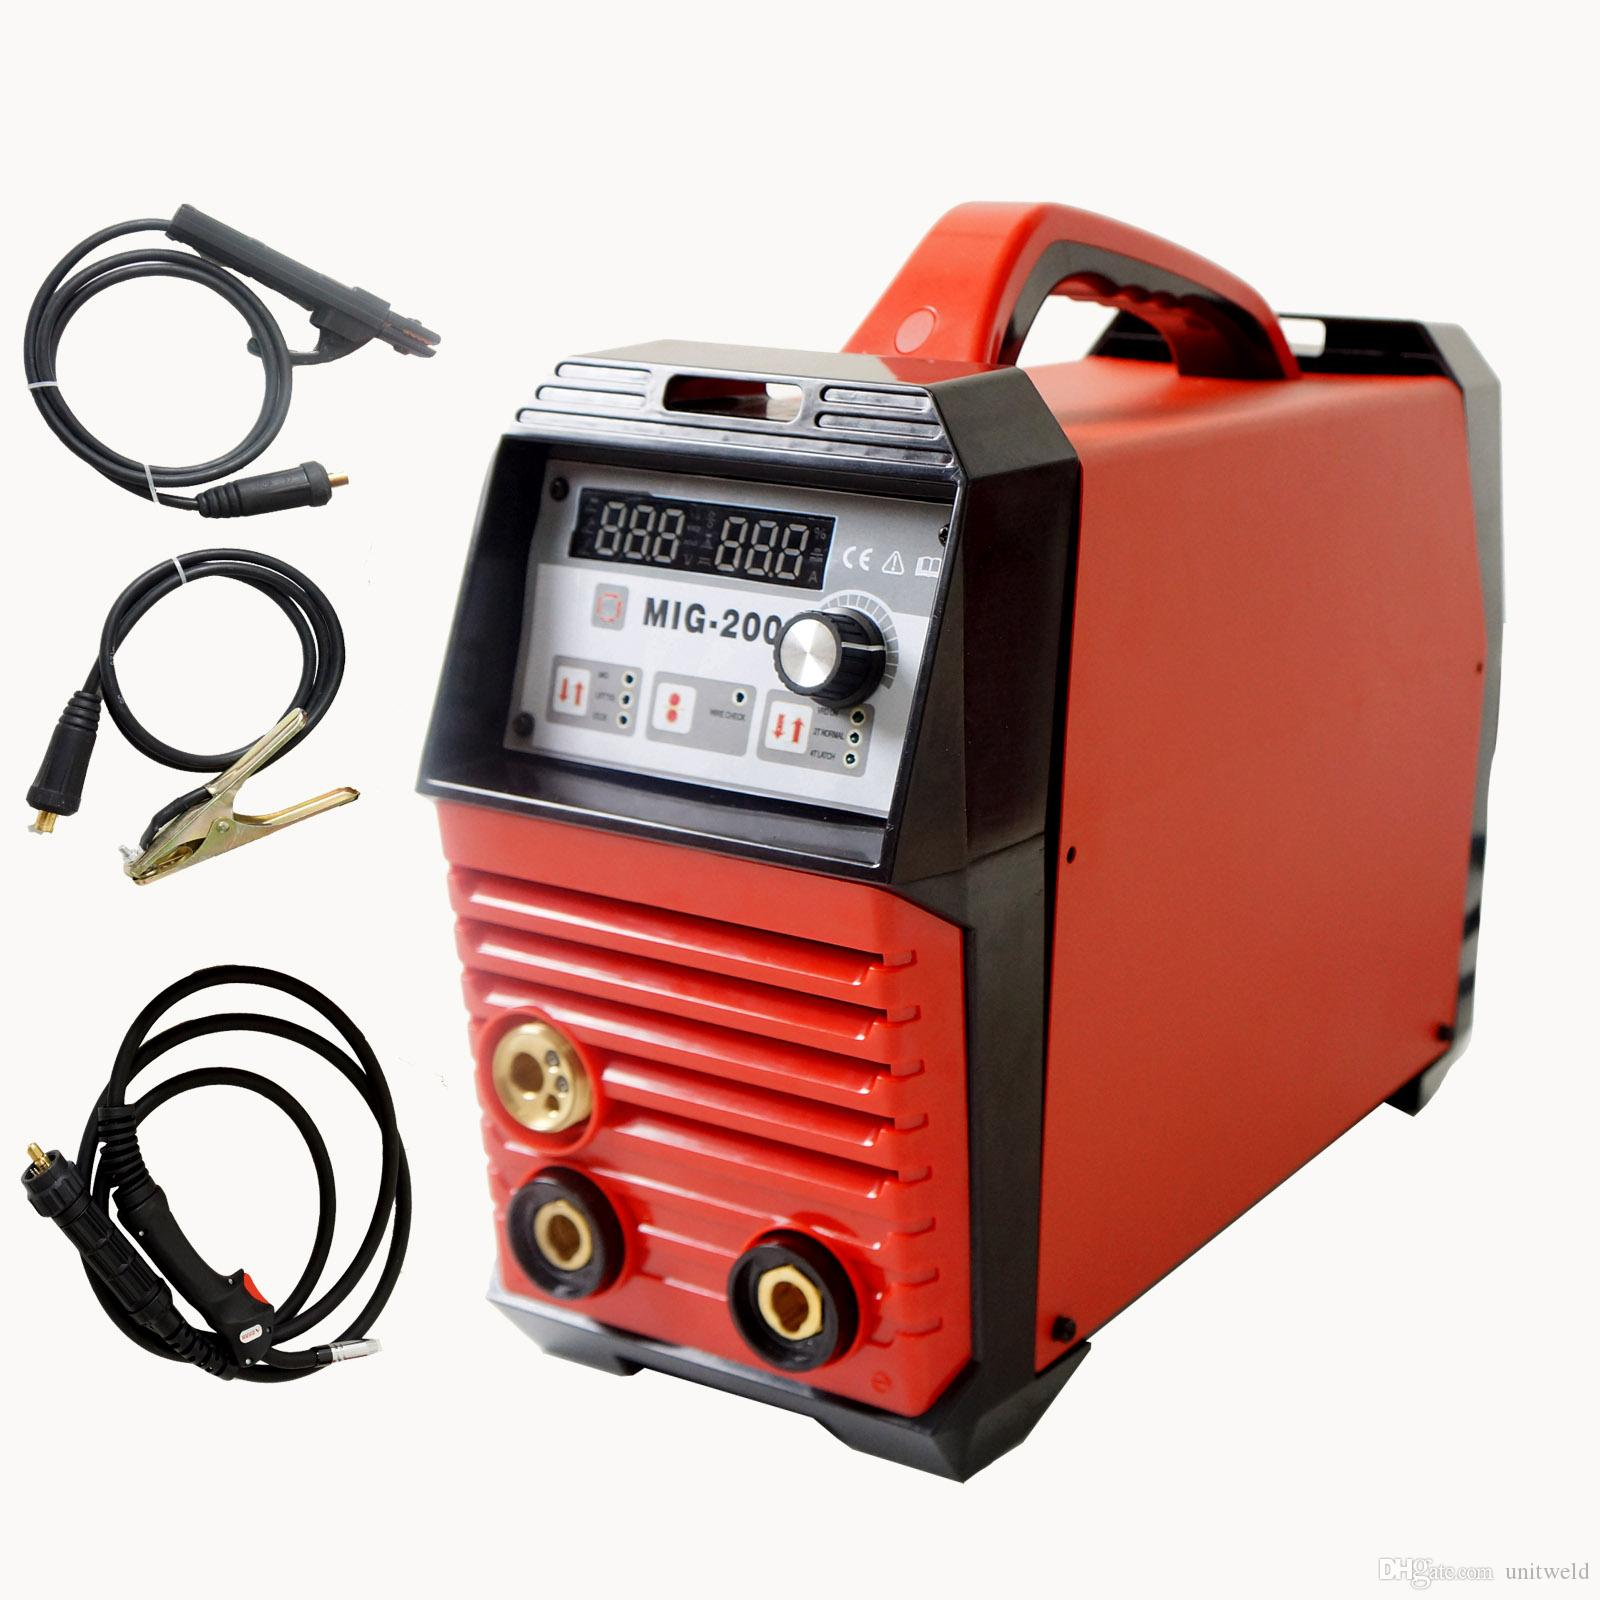 Compre Mig 200a Mquina De Solda Inversores Mag Arc Lift Tig Wiring A Welder Gas Gasless Flux Cored Wire Solid Core Unitweld